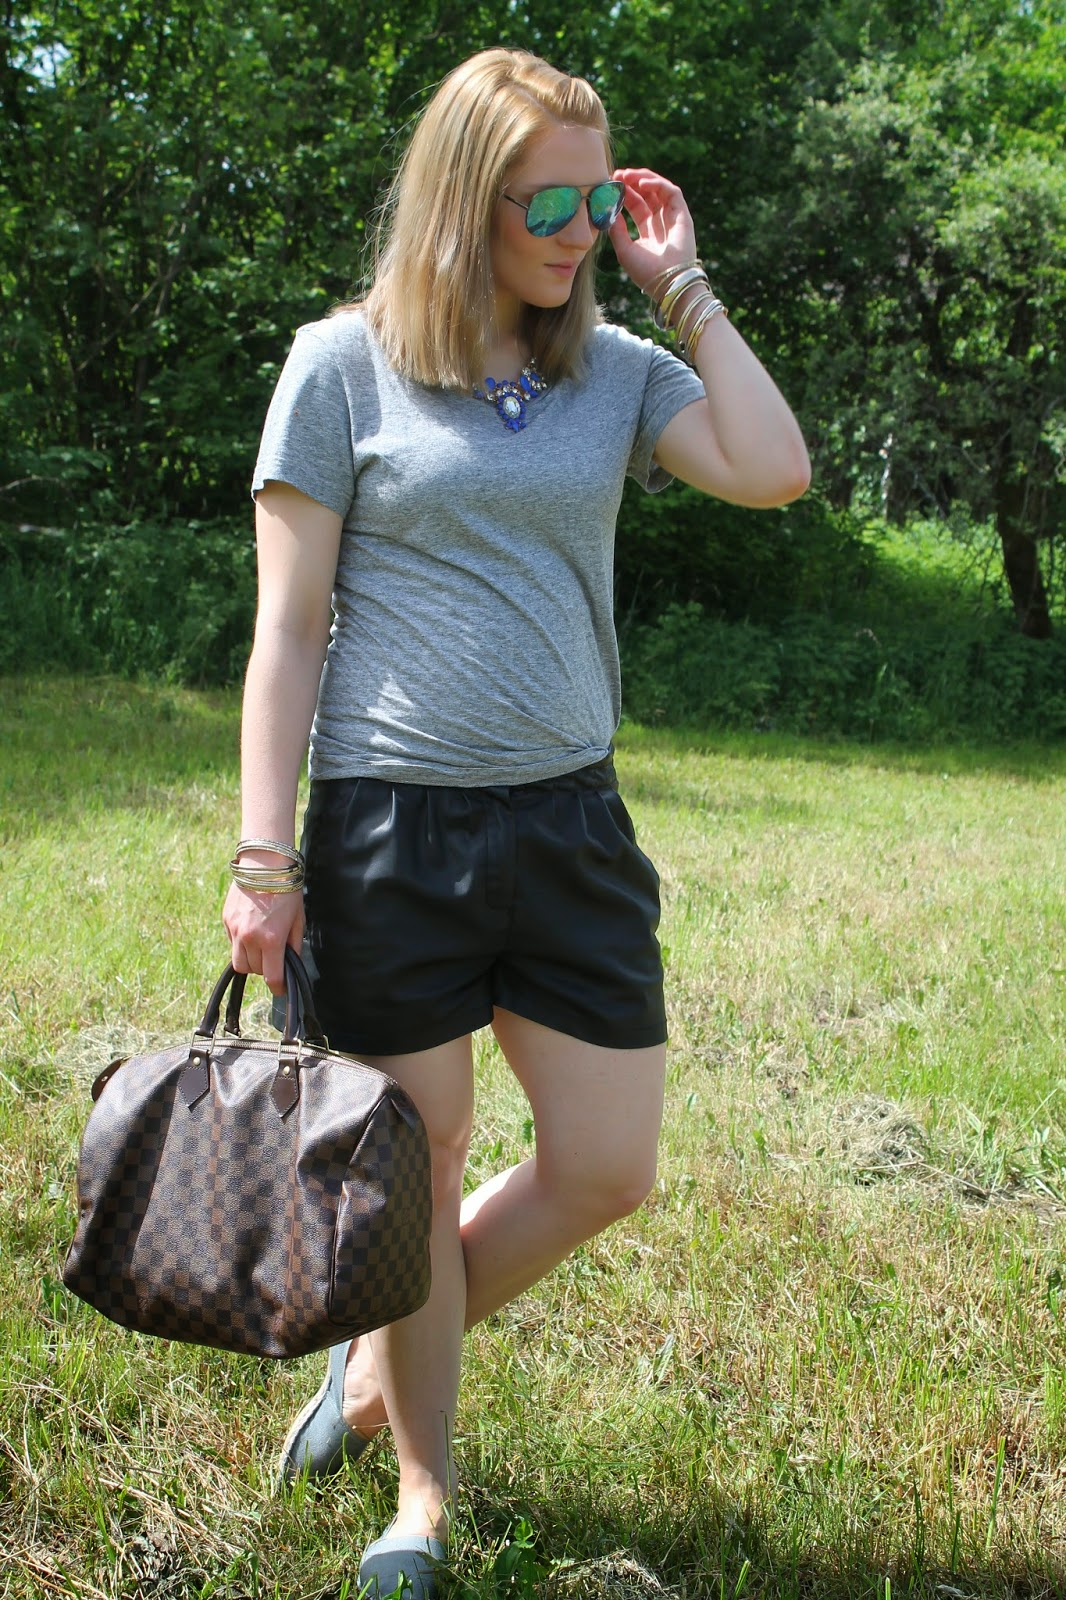 Fashionblogger Austria / Österreich / Deutsch / German / Kärnten / Carinthia / Klagenfurt / Köttmannsdorf / Spring Look / Classy / Edgy / Summer / Summer Style 2014 / Summer Look / Fashionista Look / Oasap / Statement / H&M / Leather Short / Grey Basic / Zara / Espadrillas / Espadrij / Louis Vuitton Speedy Damier Ebene 35